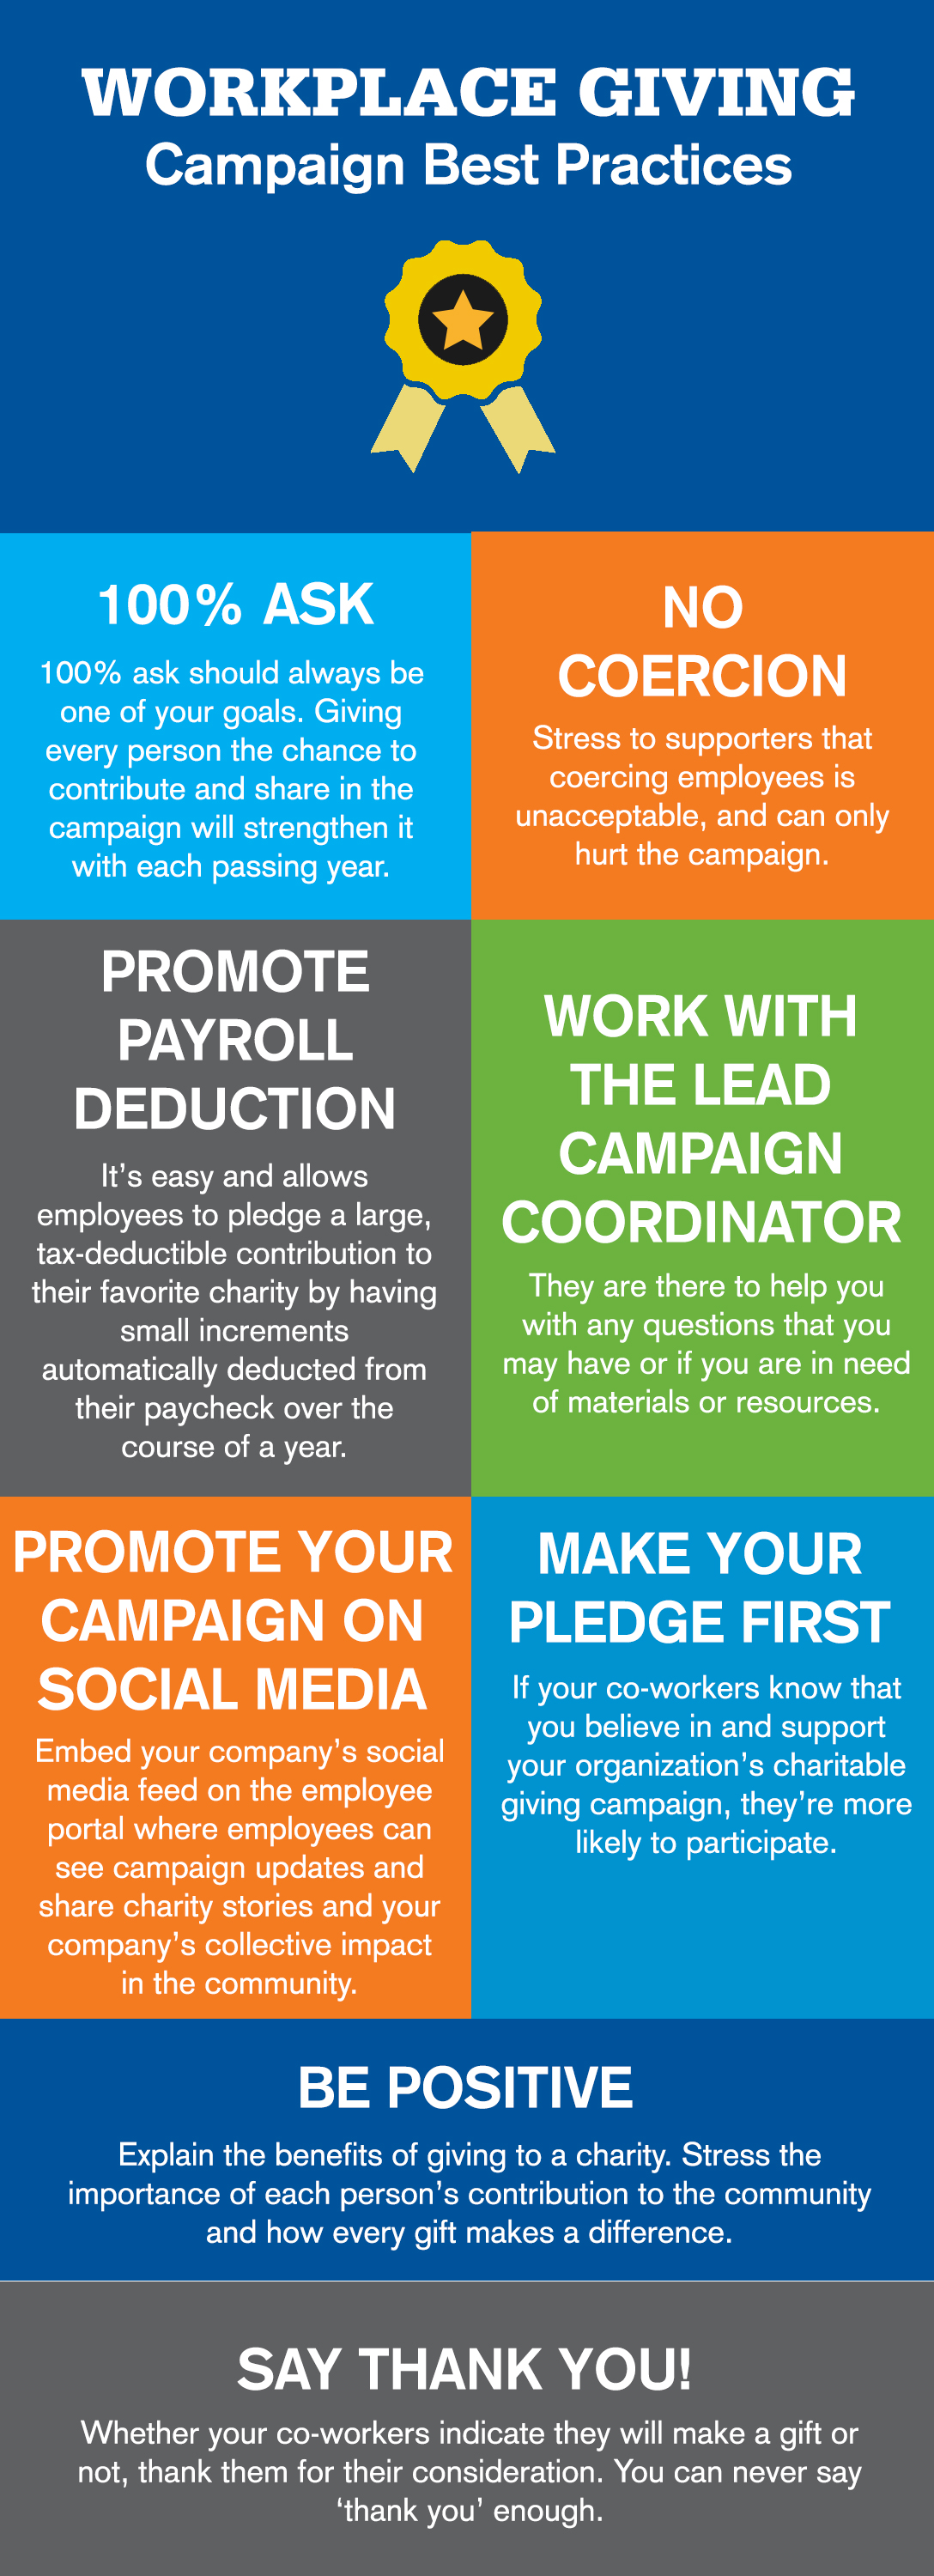 workplace giving campaign best practices